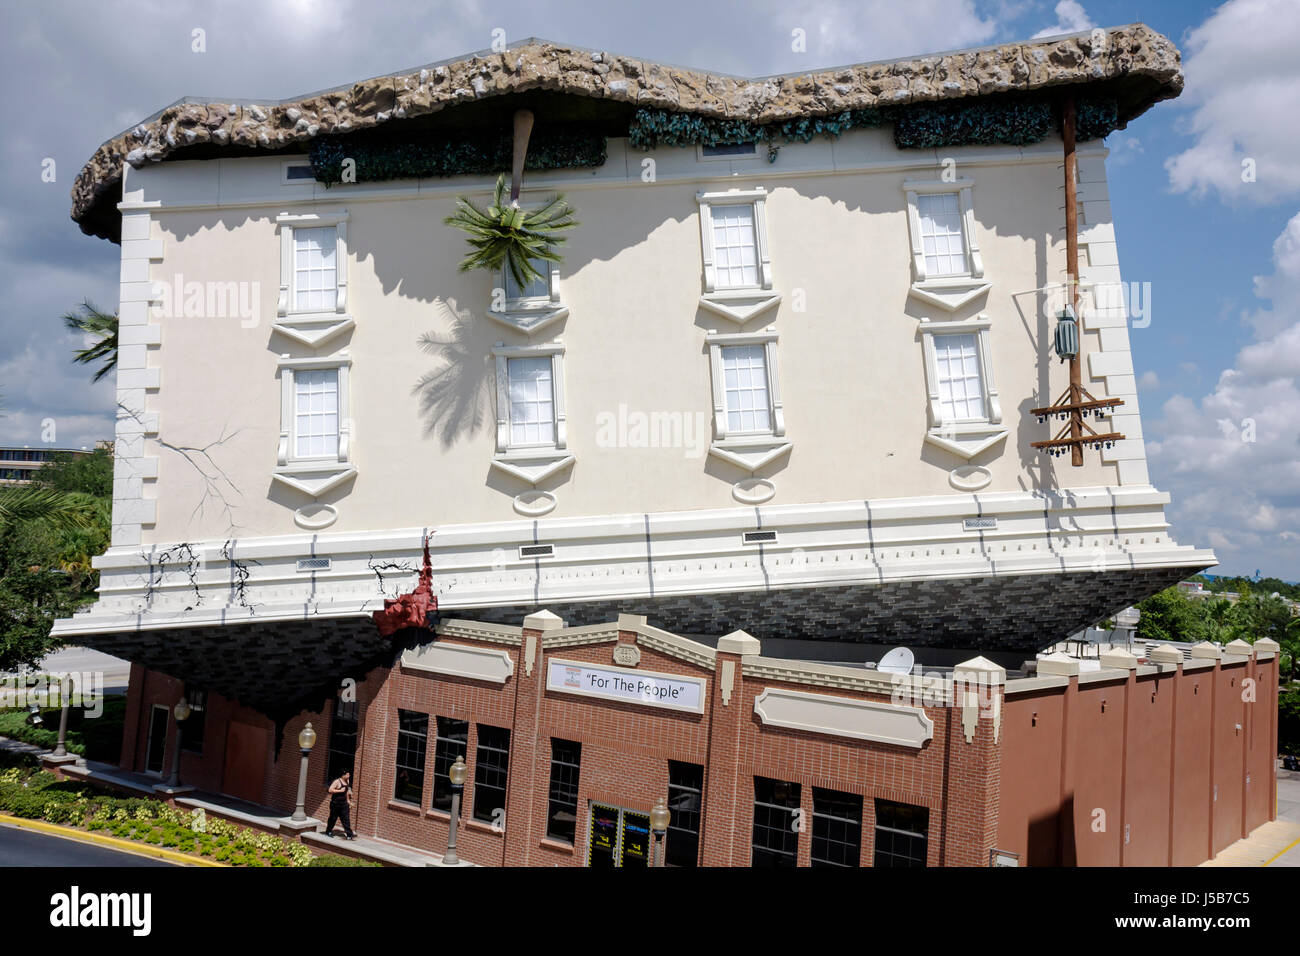 Upside Down Building Stock Photos Upside Down Building